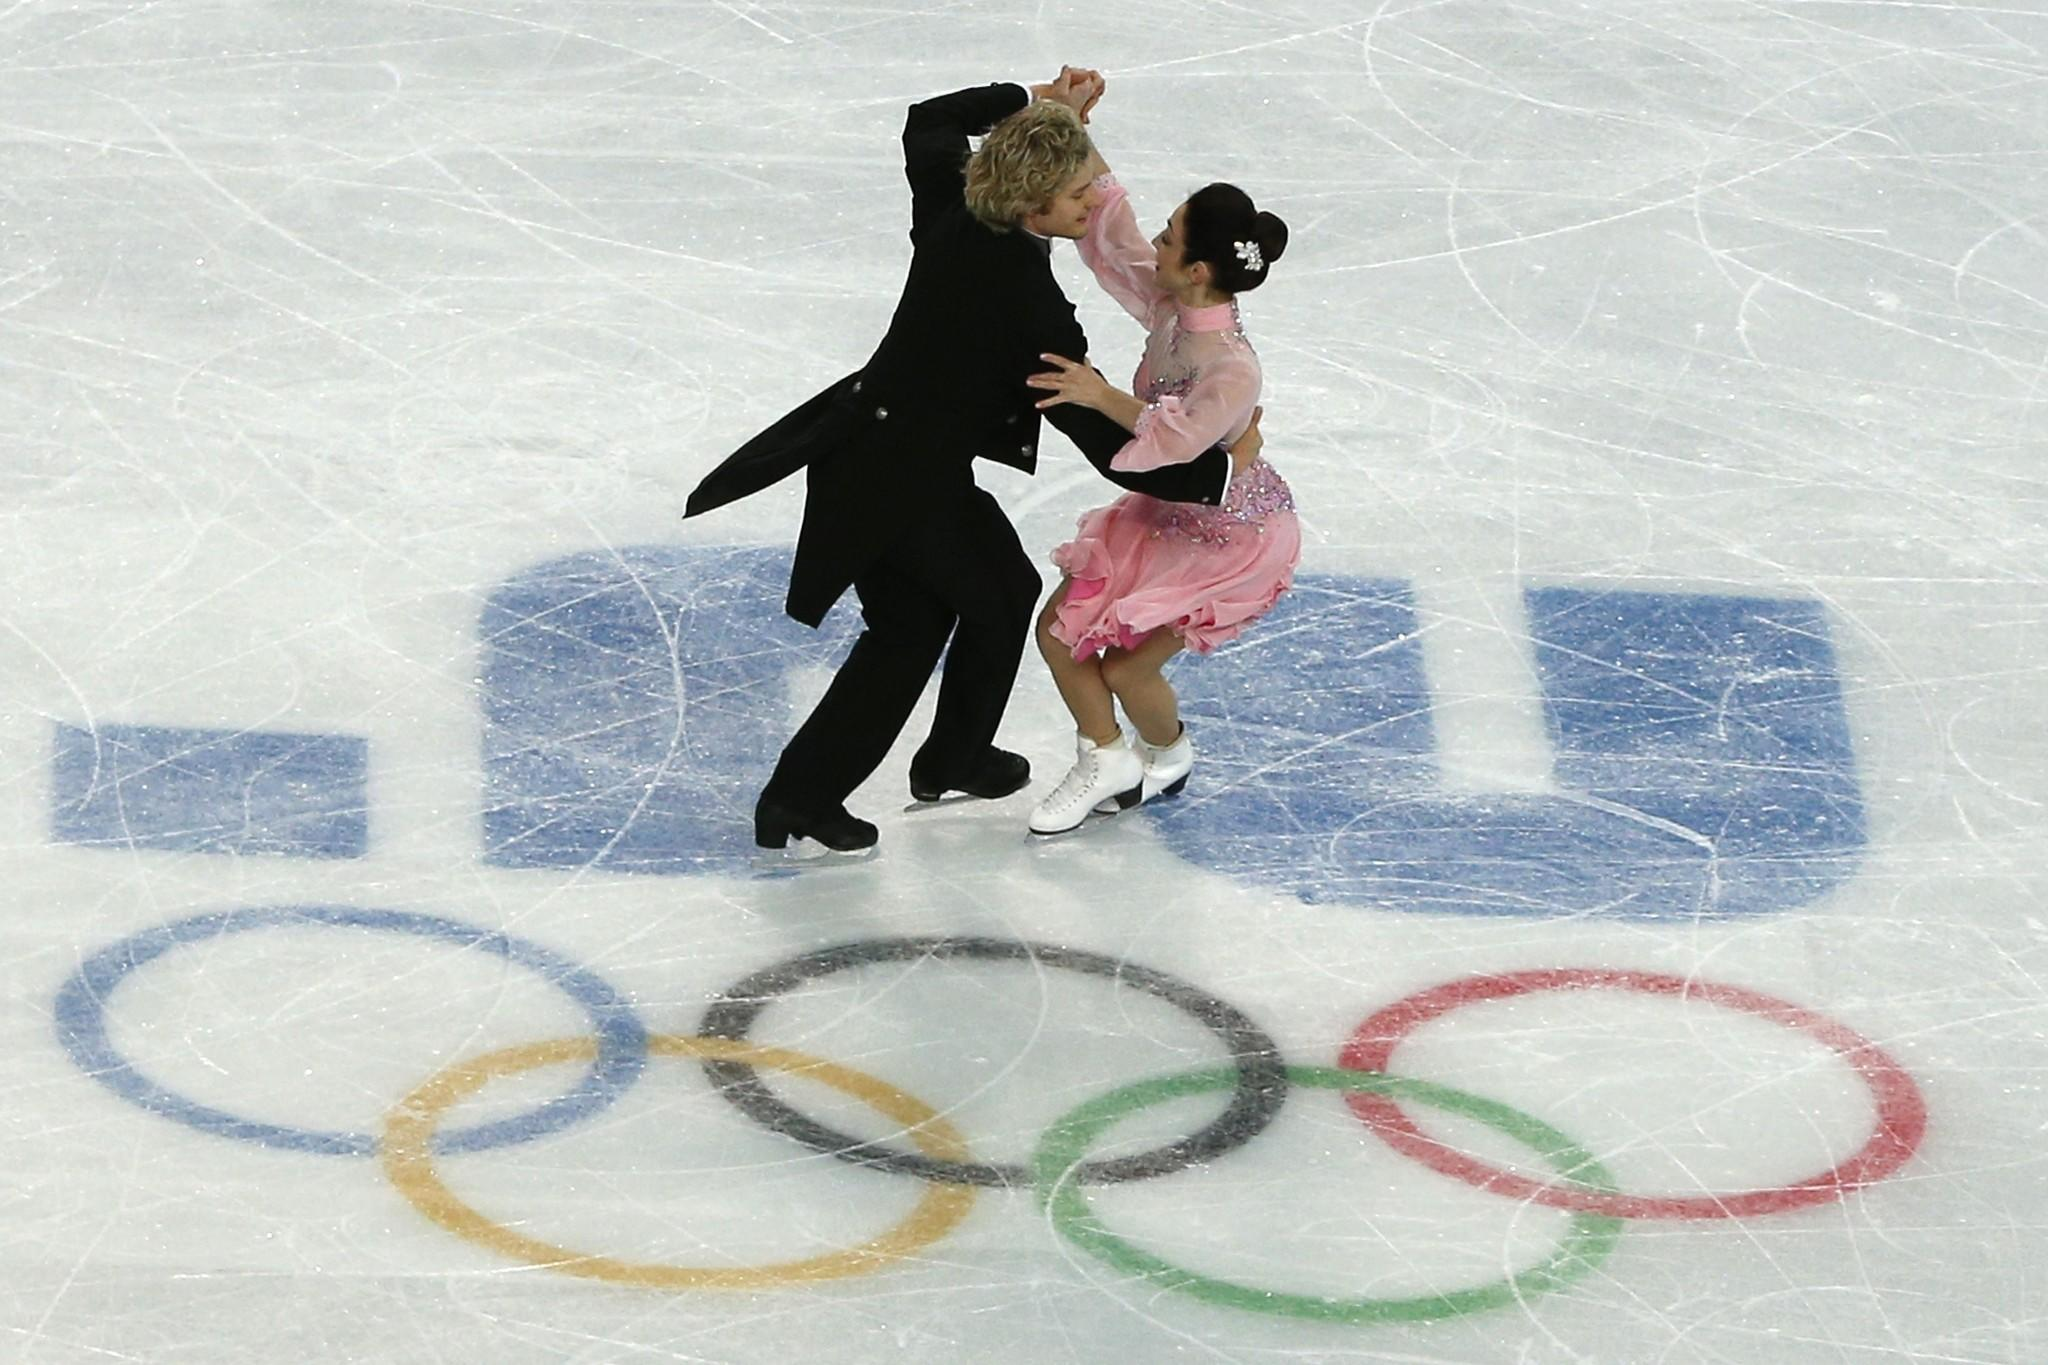 Meryl Davis and Charlie White perform during training at the Iceberg Skating Palace.